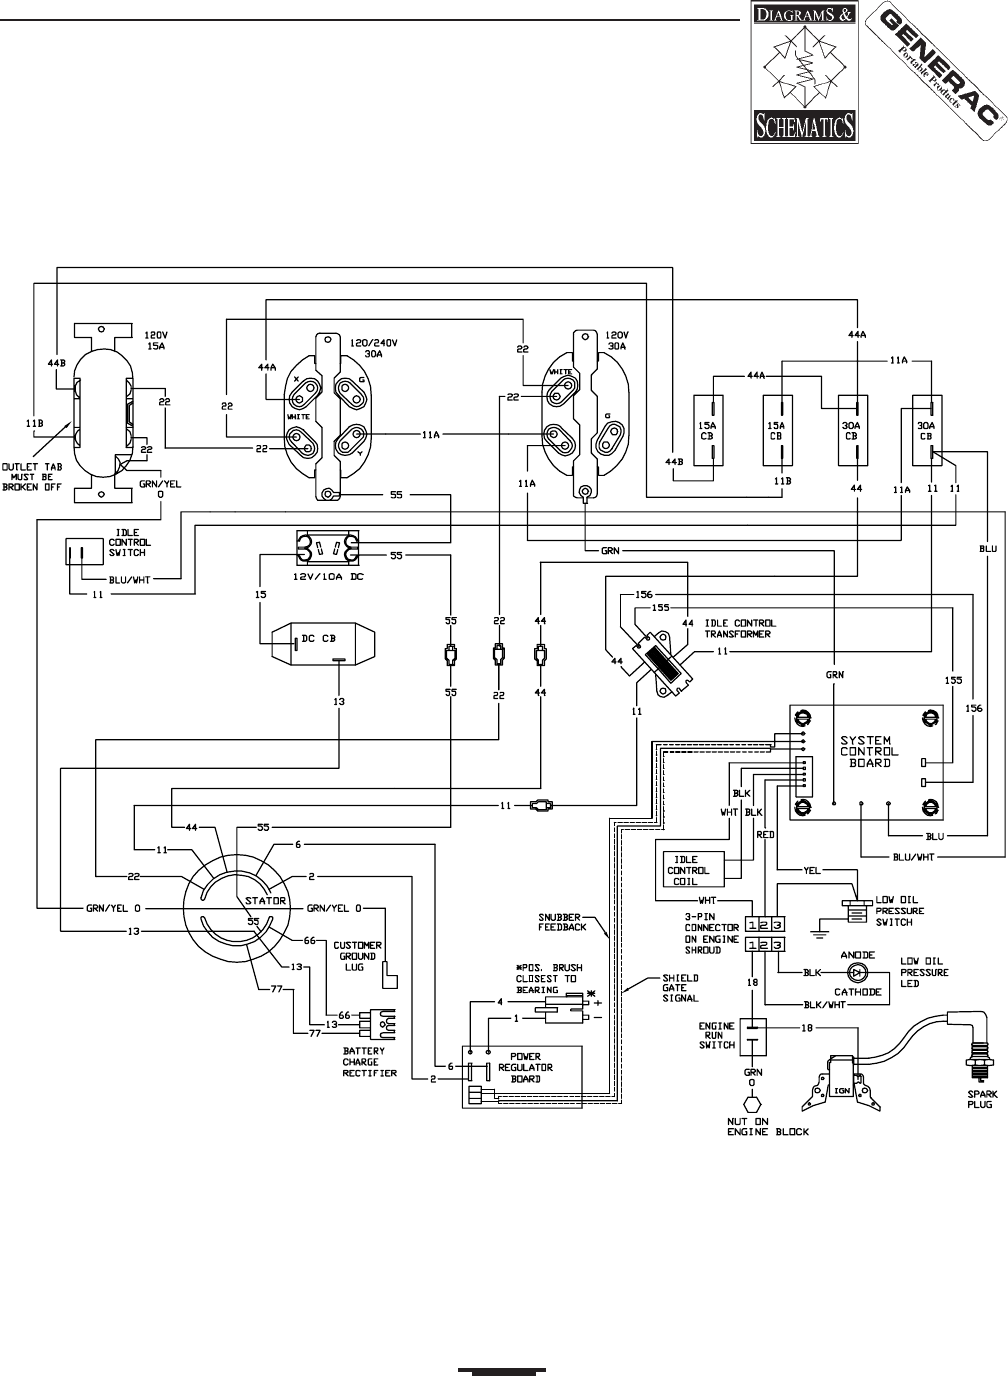 Generac 5500xl Portable Generator Wiring Diagrams on 2006 ford f350 ke diagram